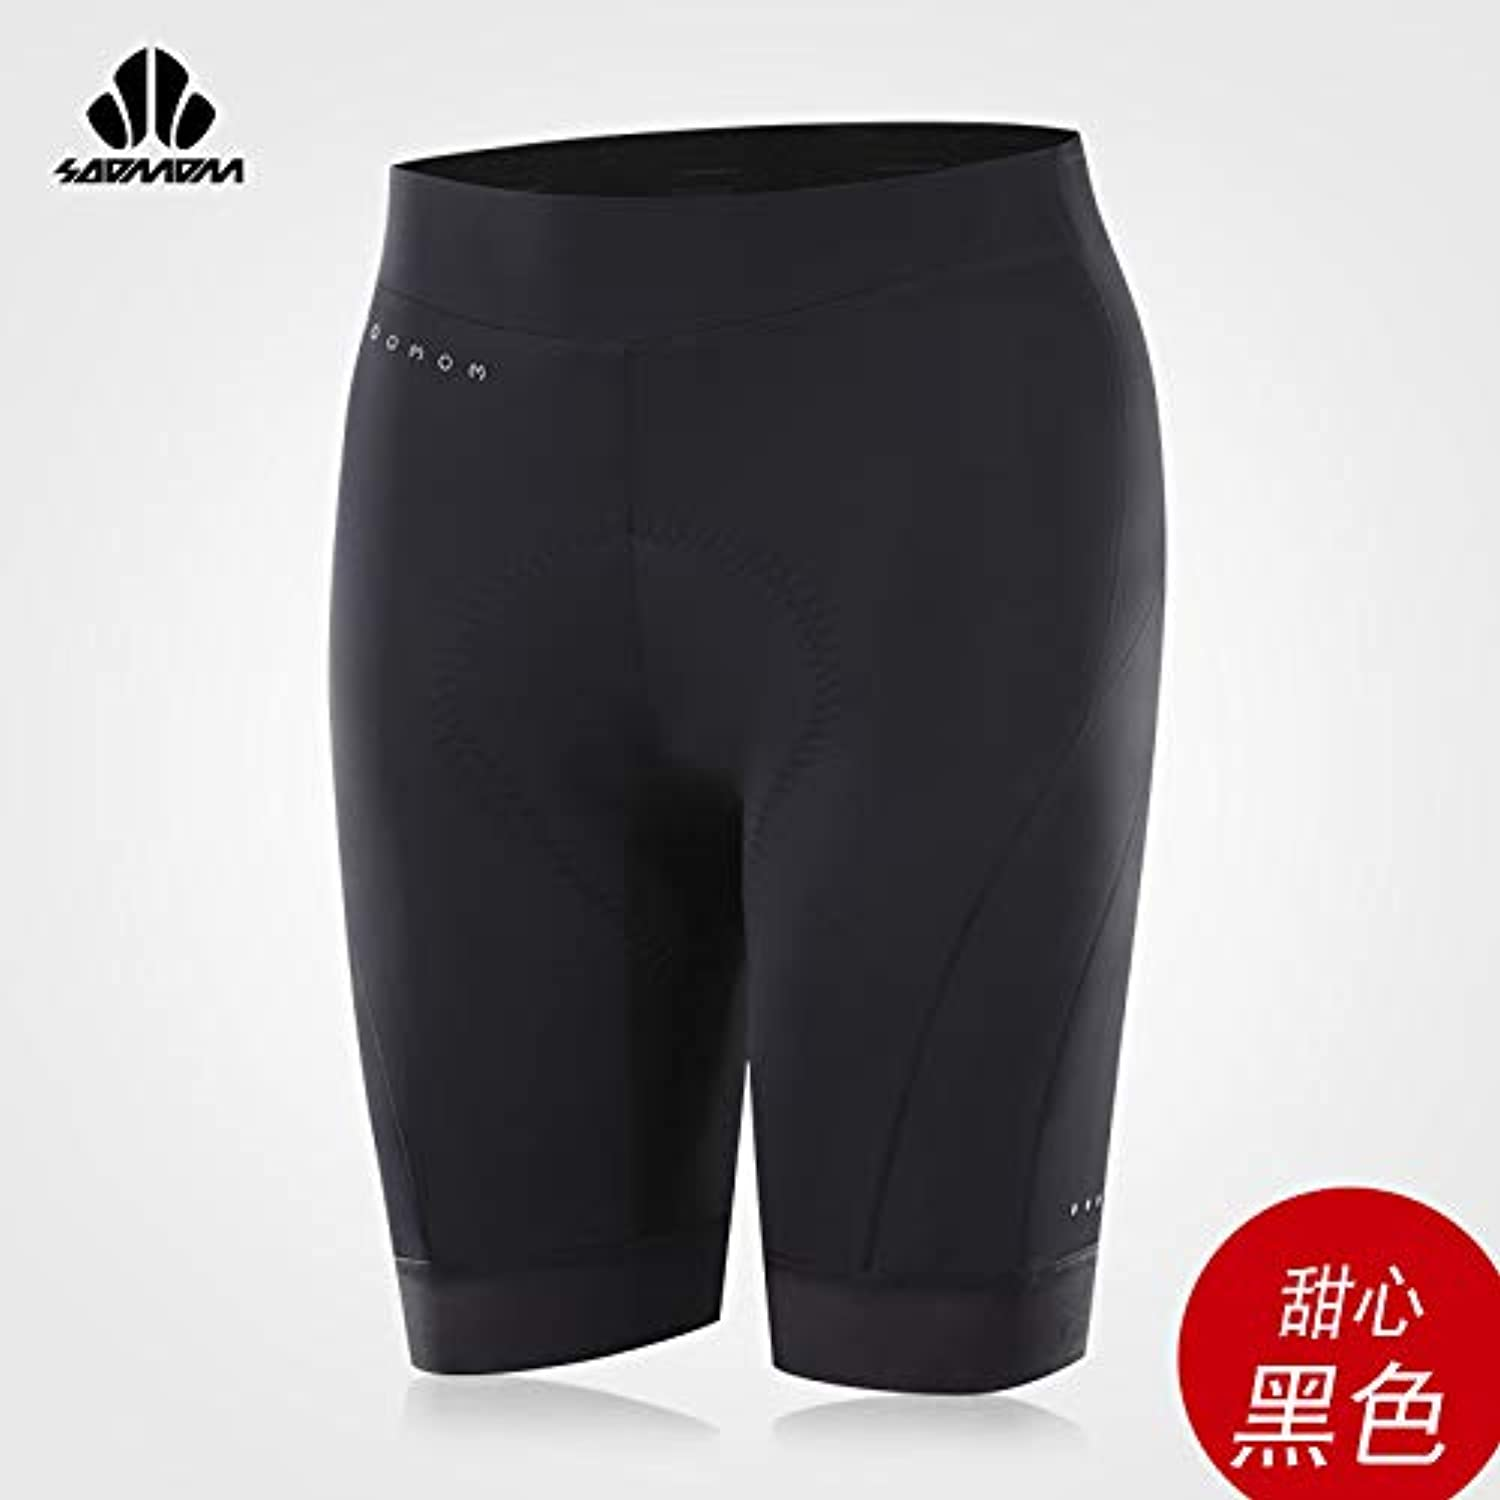 Super League Shorts Female Summer Riding Pants Breathable Quick-Drying Pants Road Cycling Spinning Sweetheart